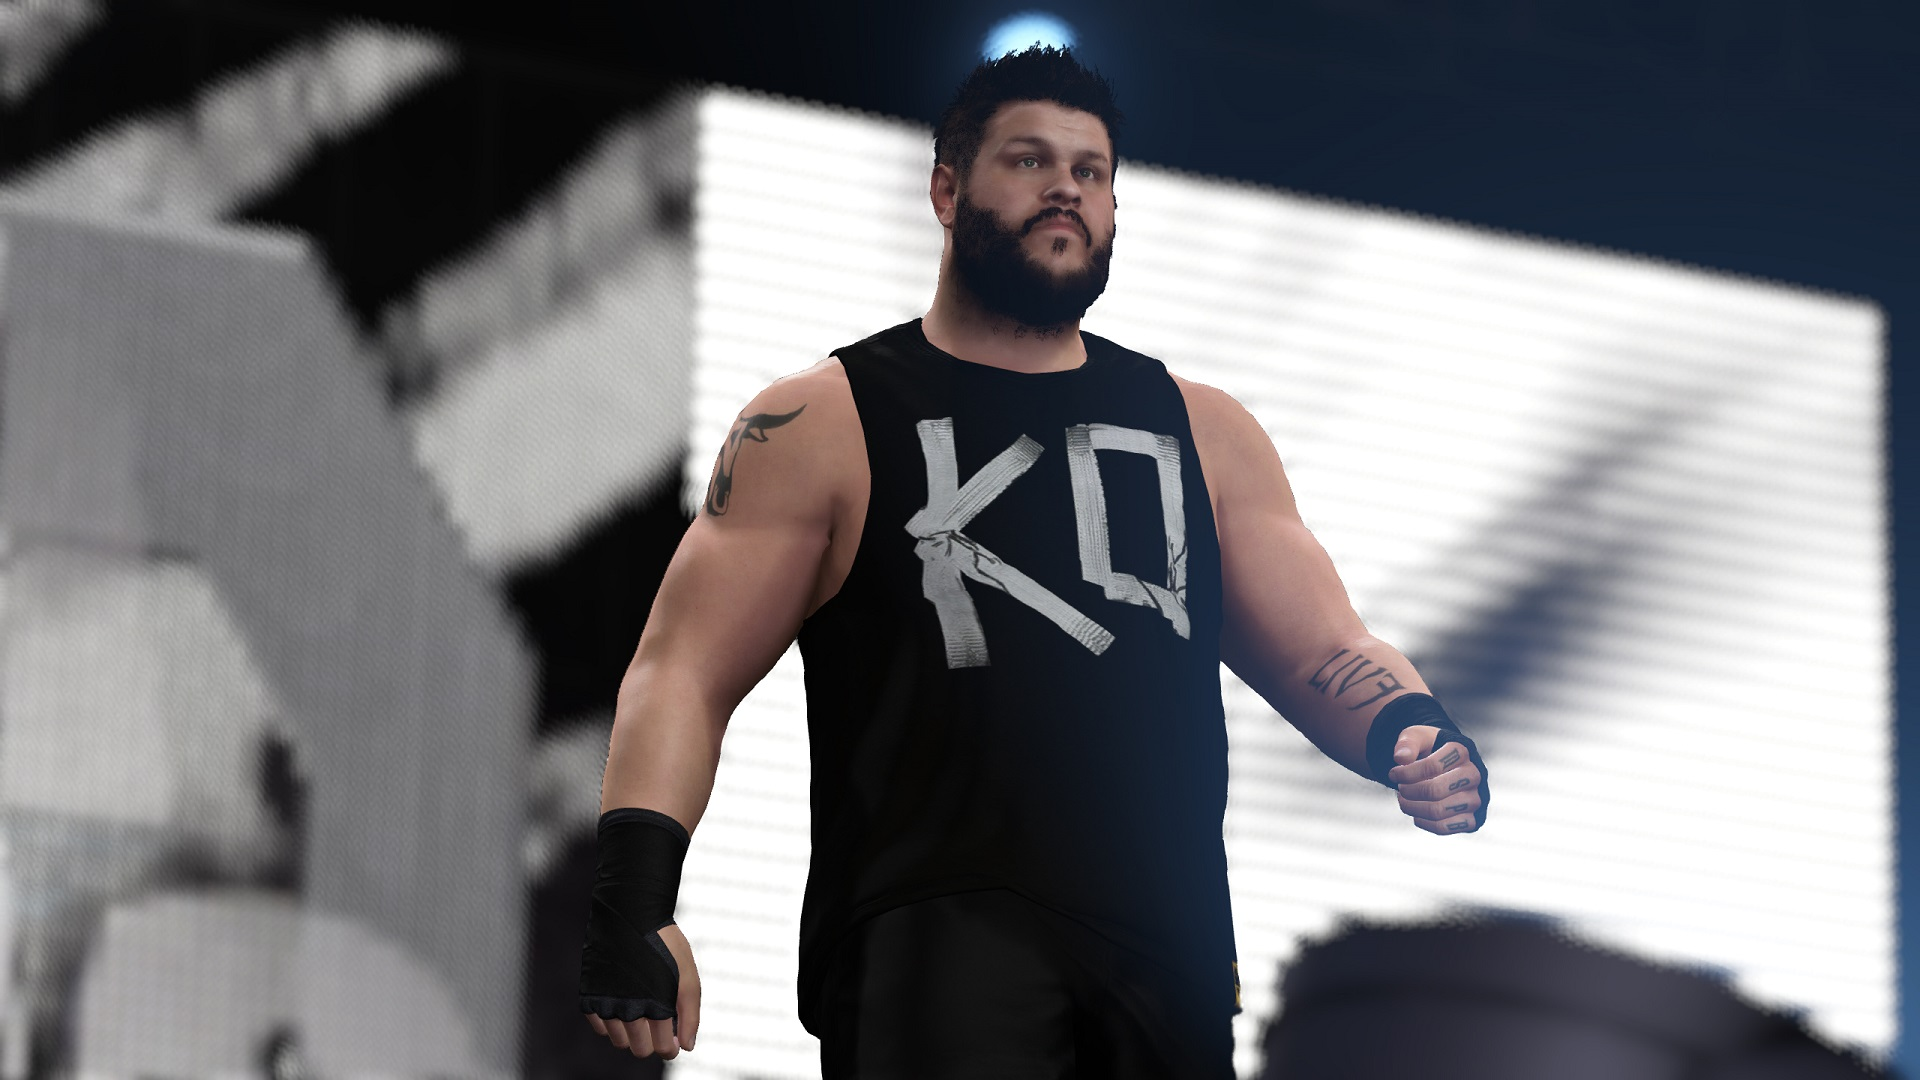 fightowensfight2k16